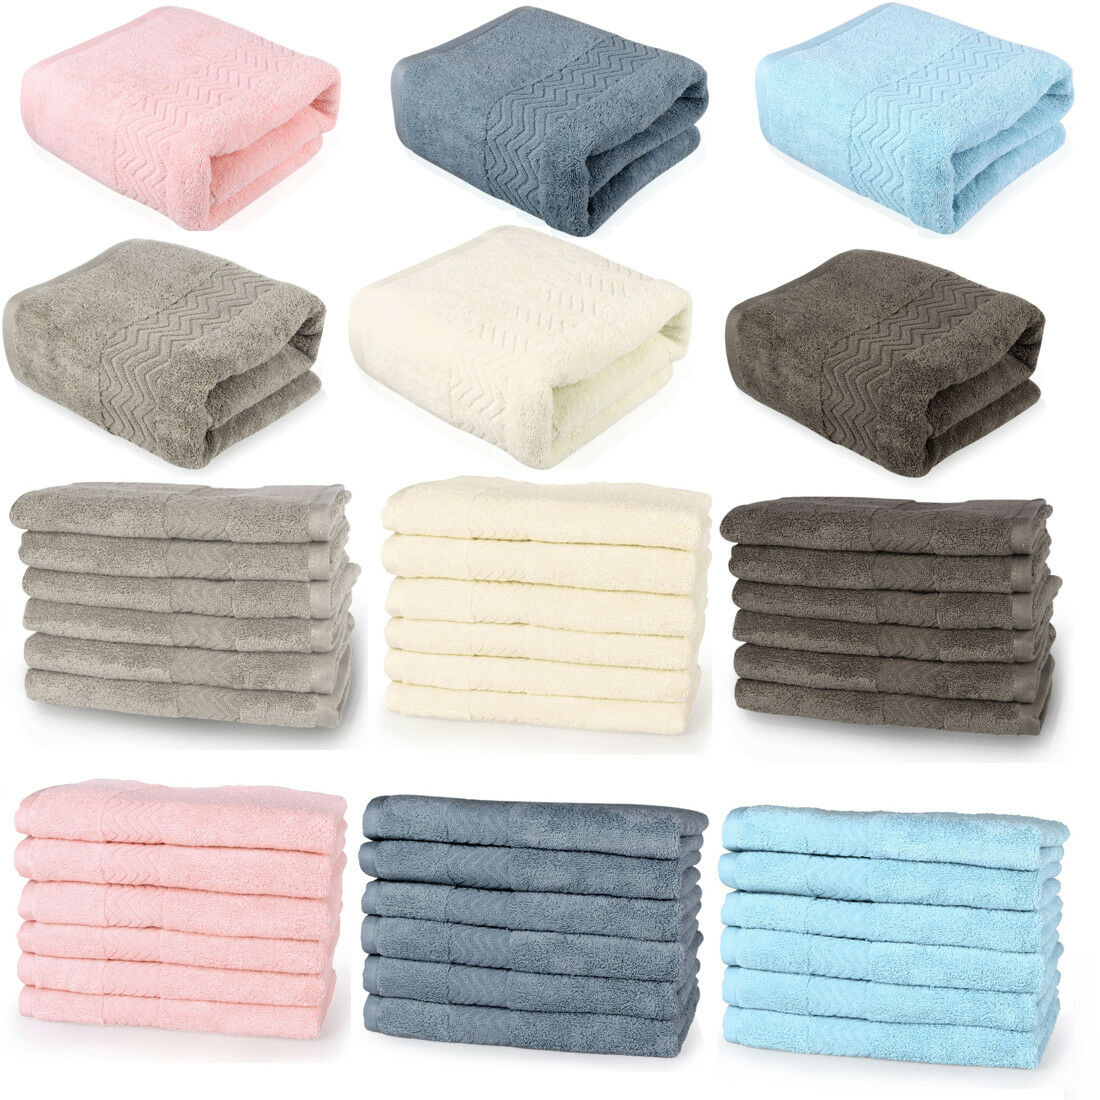 Bath Towel Set Bathroom Towels Washcloths Hand Towel 100 Cotton 6